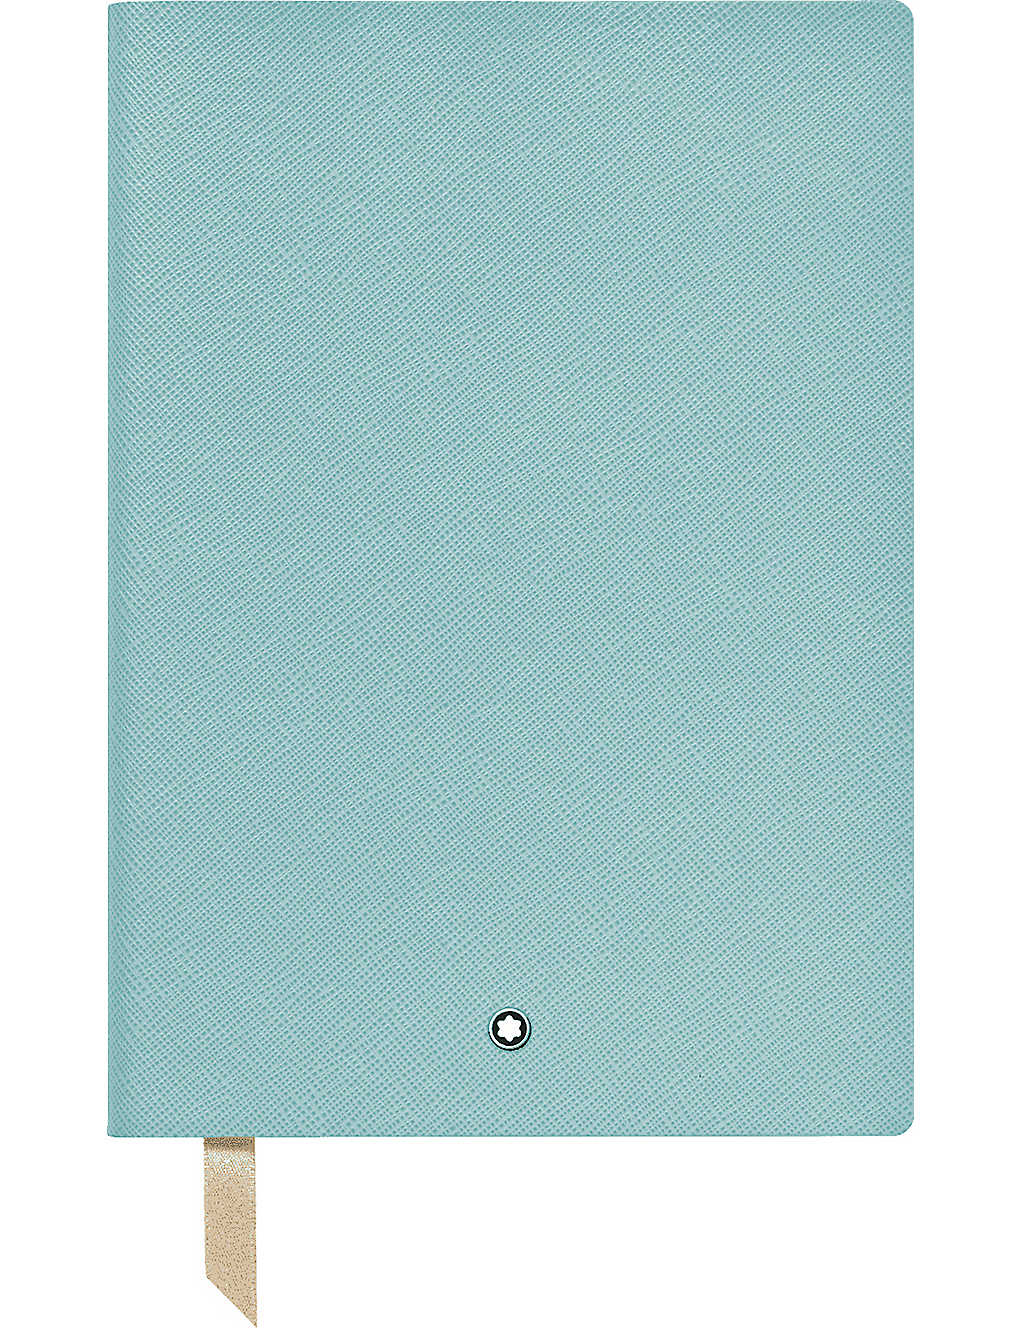 MONTBLANC: Fine stationery 146 lined leather notebook